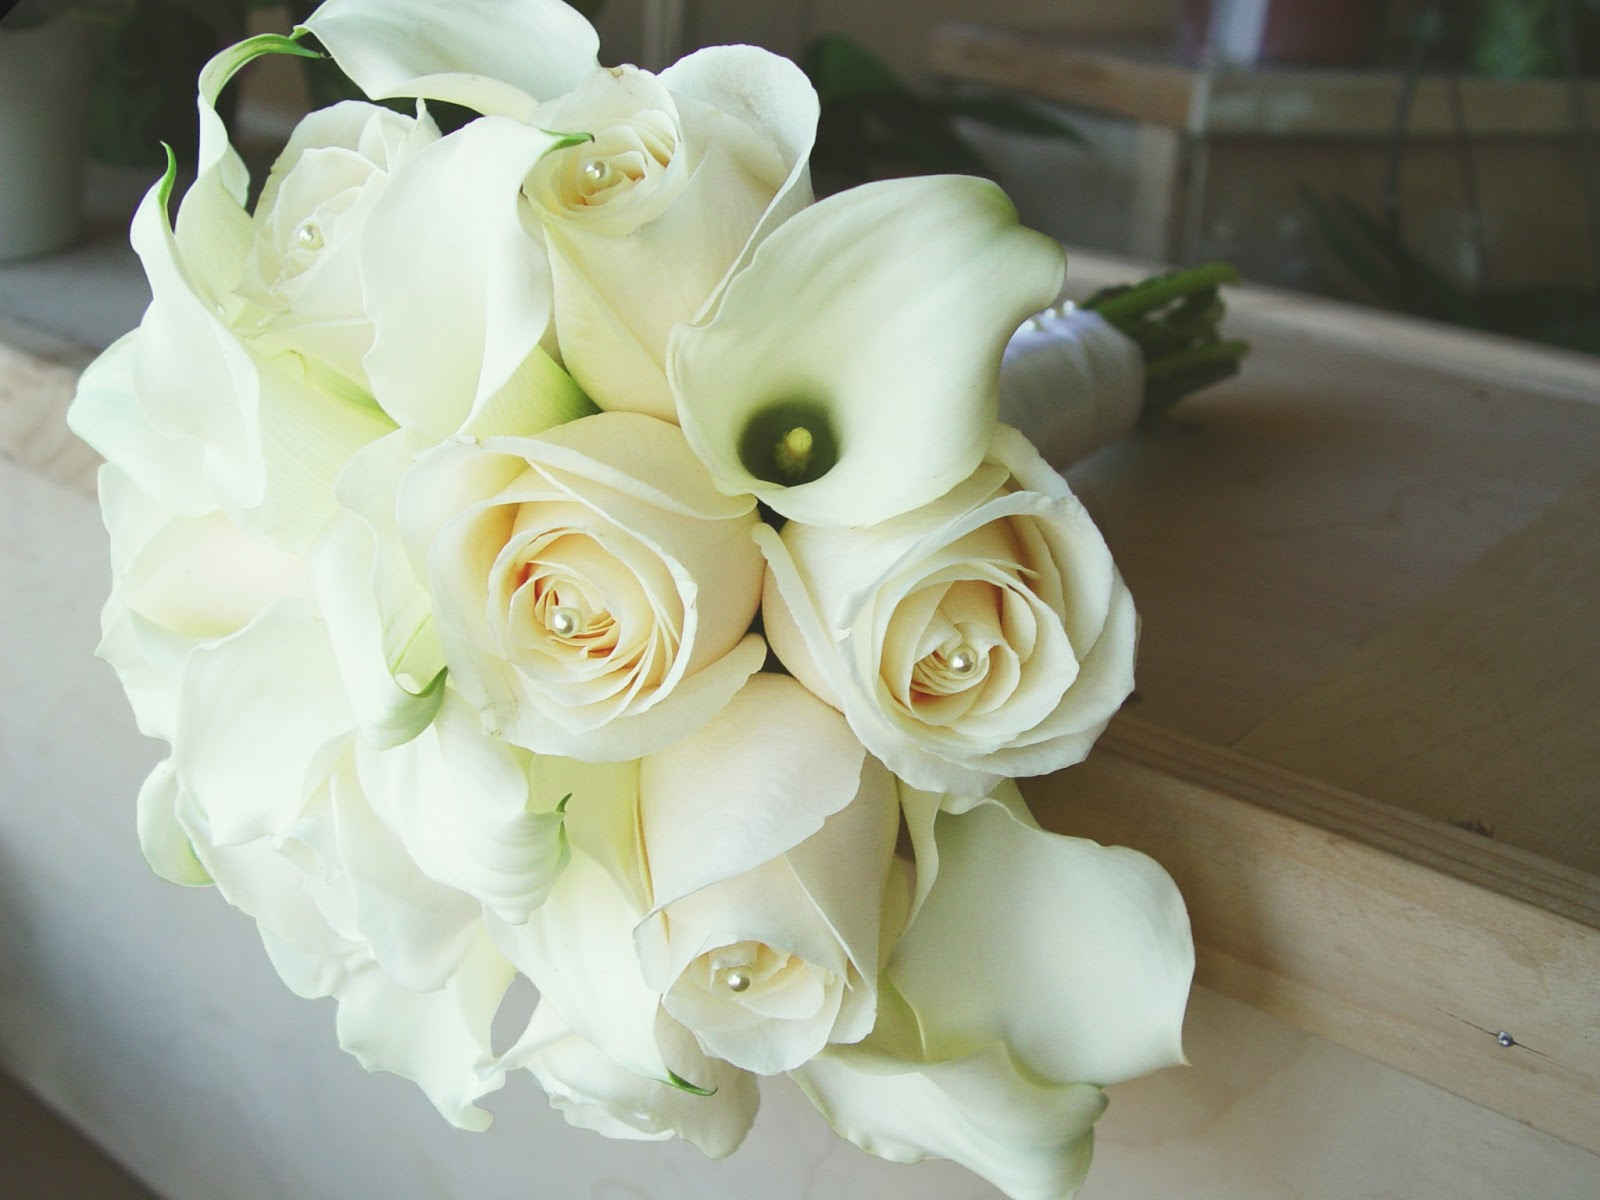 Oakland florists in oakland ca florist flower shop oakland ca apple wedding bouquet white calla lily with creme roses recently izmirmasajfo